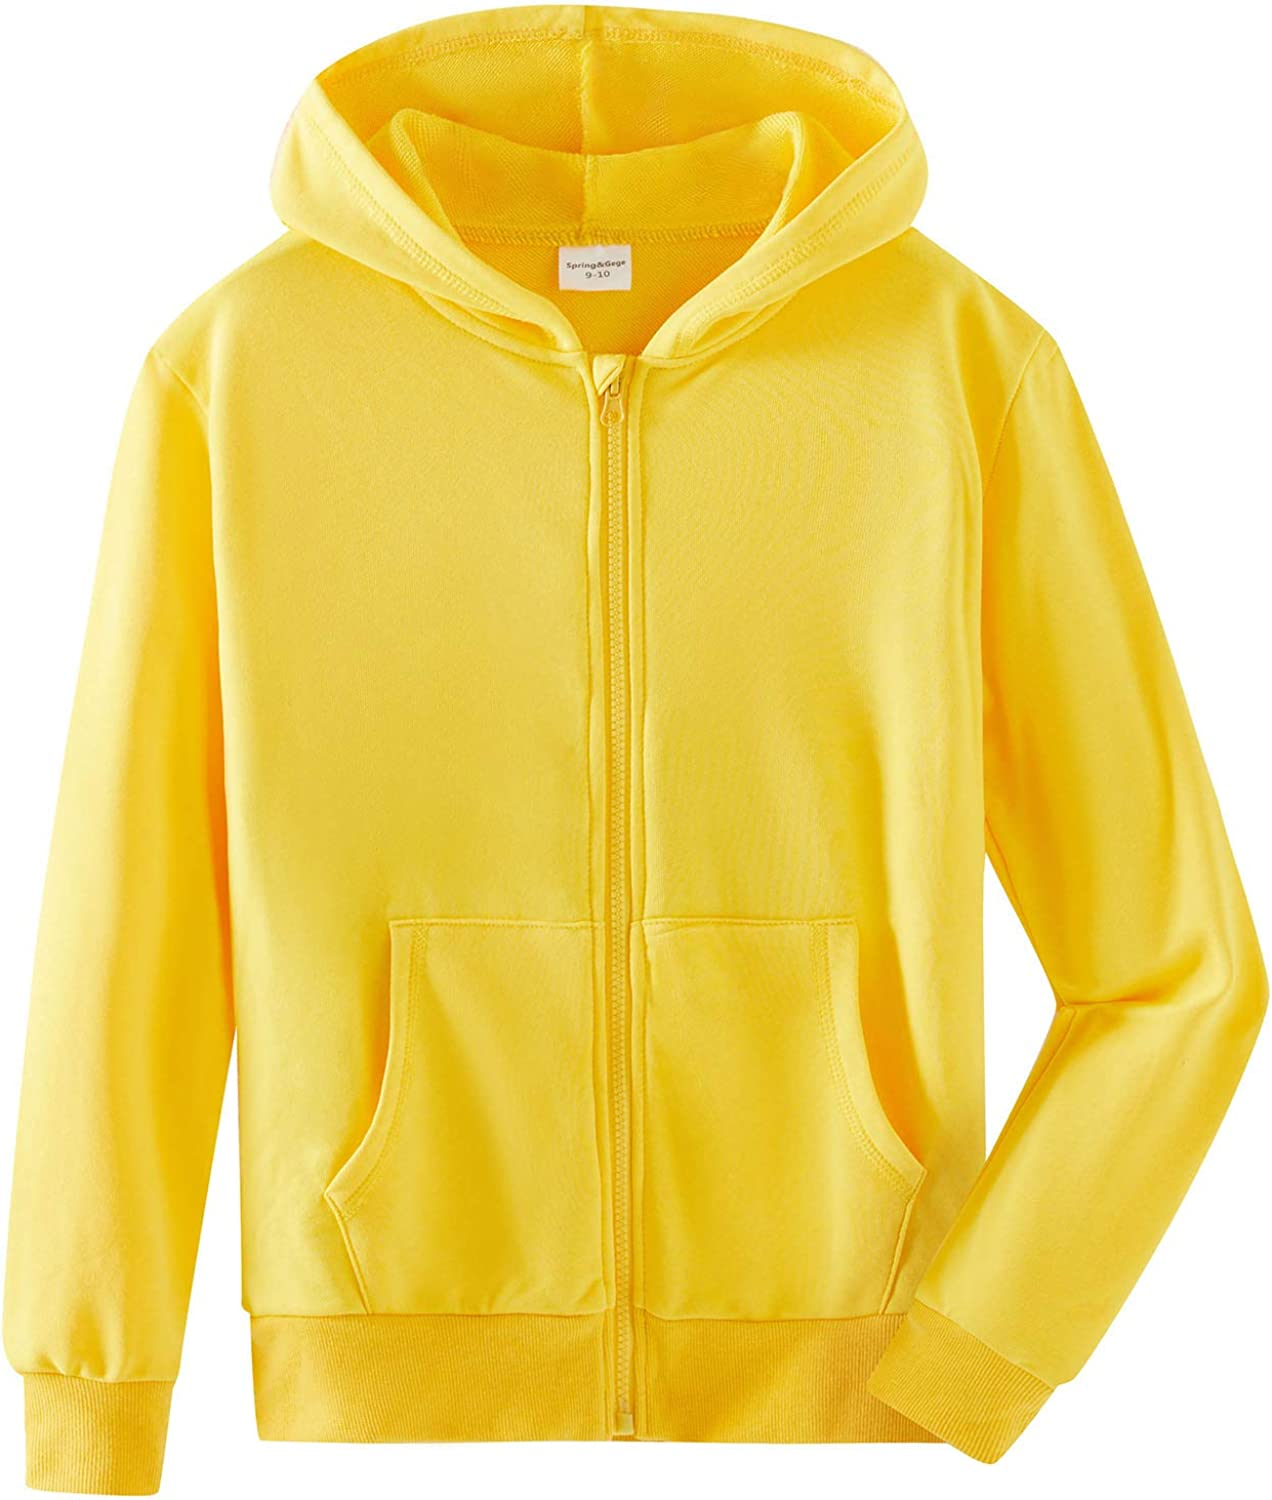 SpringGege Youth Manufacturer regenerated Some reservation product Solid Classic Hoodies Soft Swe Full Hooded Zip